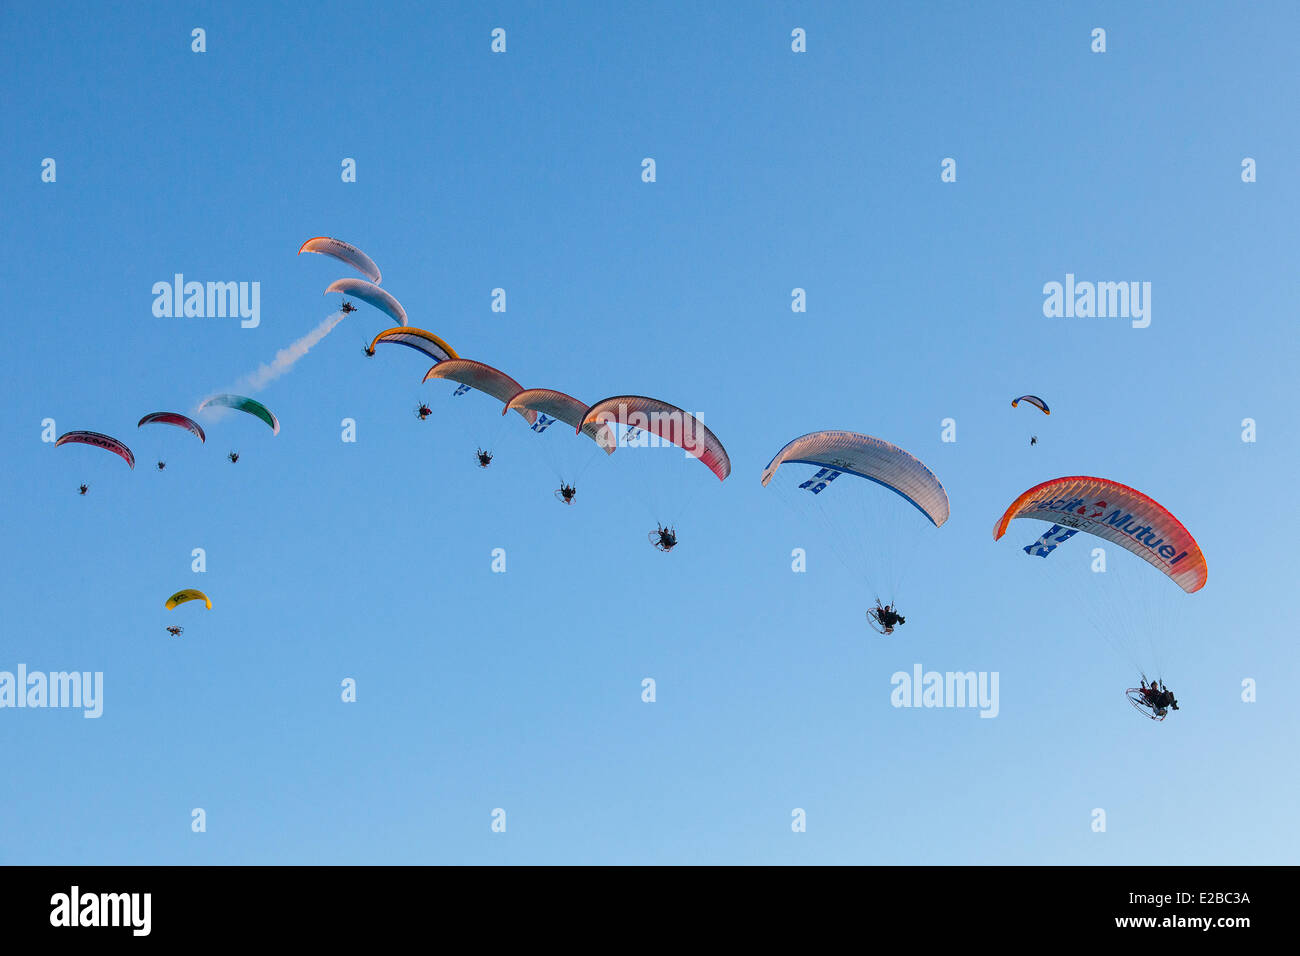 France, Moselle, Basse Ham, Biennial World Paramotor 2012 (aerial view) - Stock Image